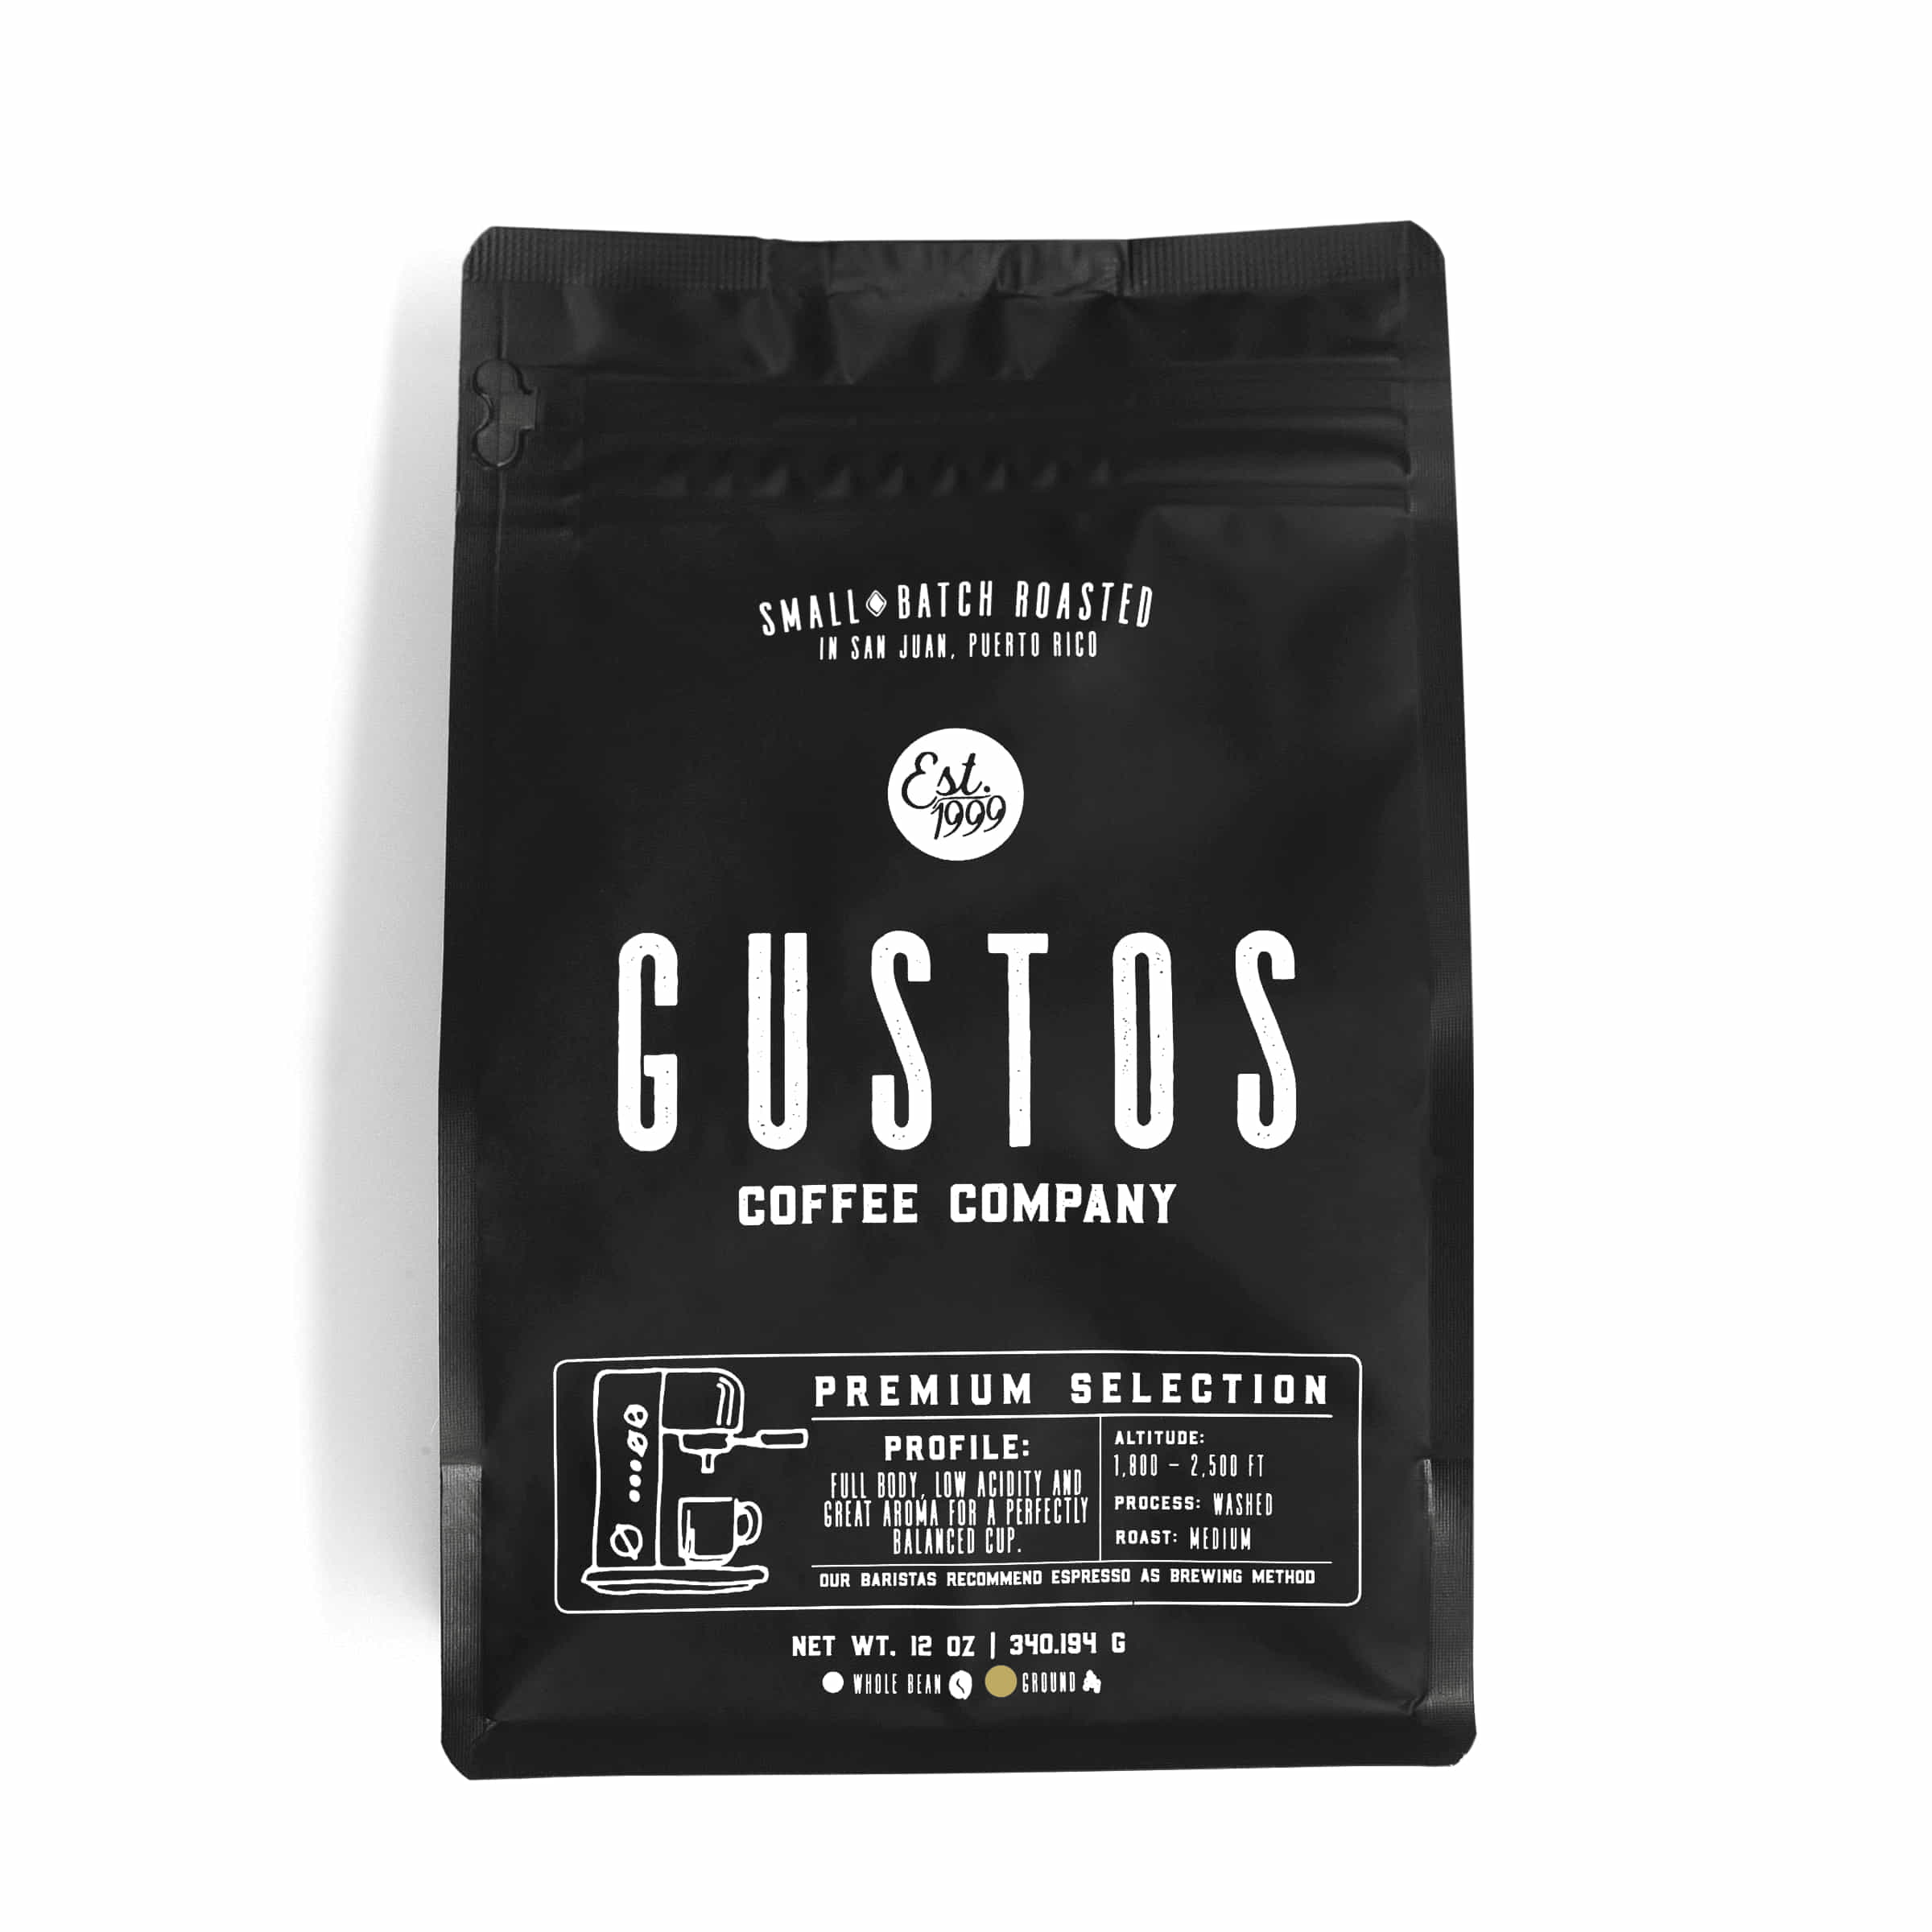 12 oz bag of Premium Gourmet Fresh Ground Coffee of the Vatican, popes and Kings Yauco PR single origin by Gustos Coffee Co